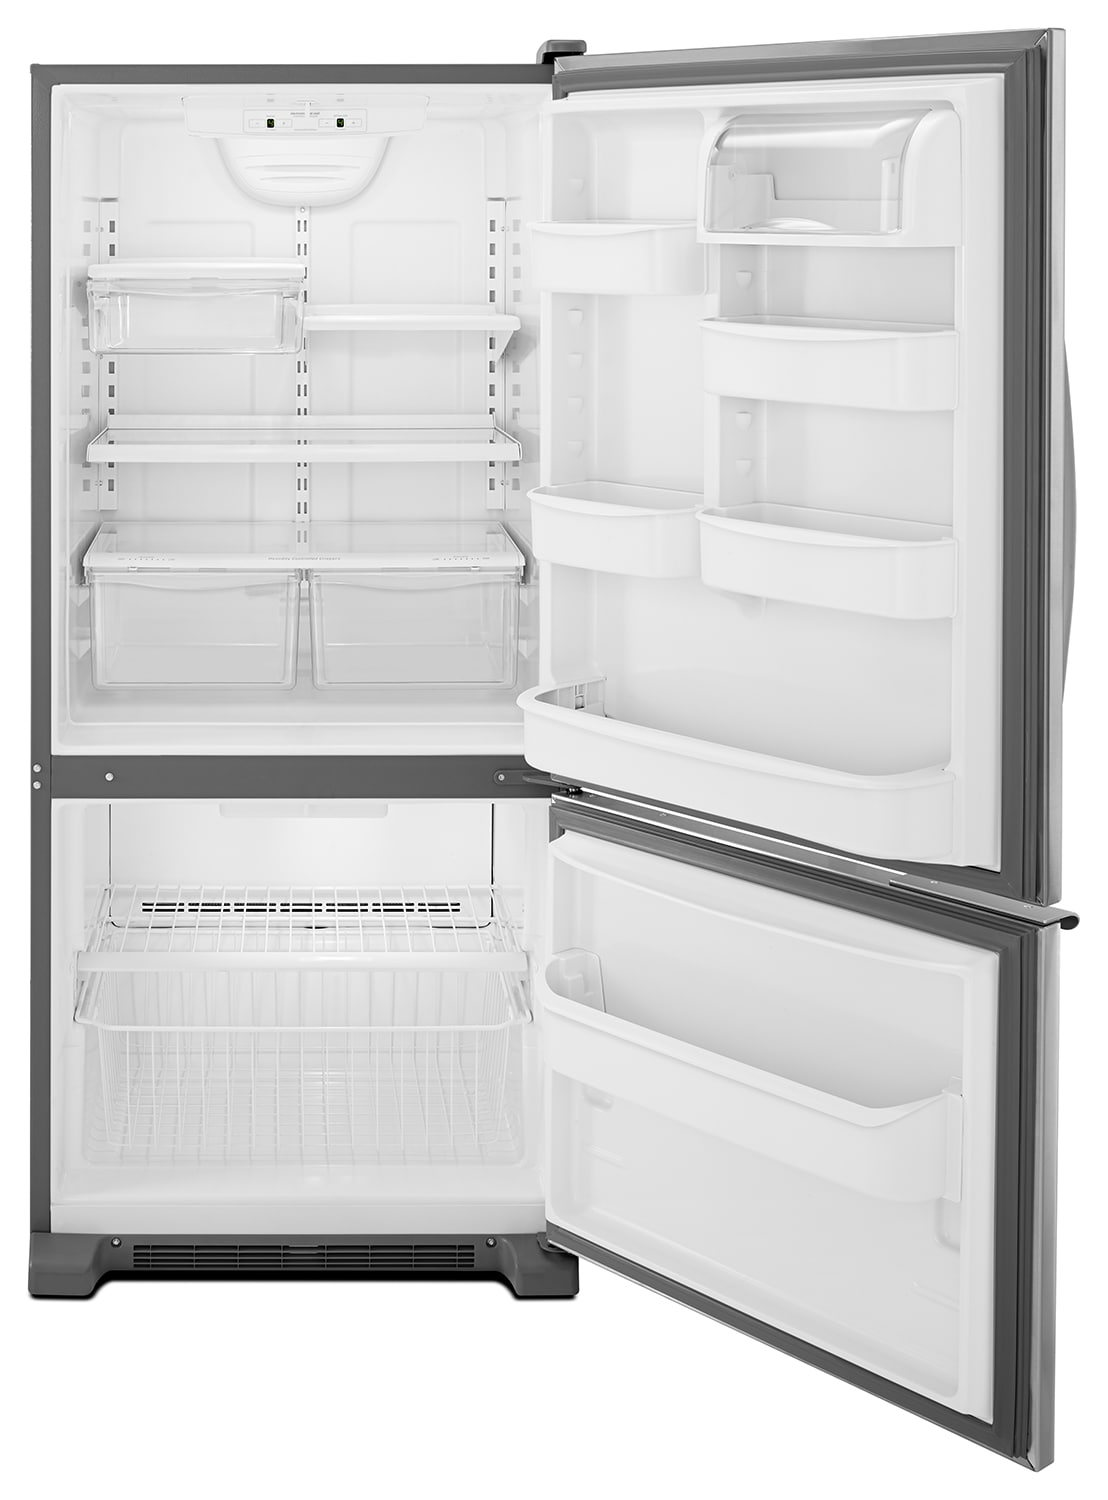 Whirlpool Stainless Steel Bottom Freezer Refrigerator 18